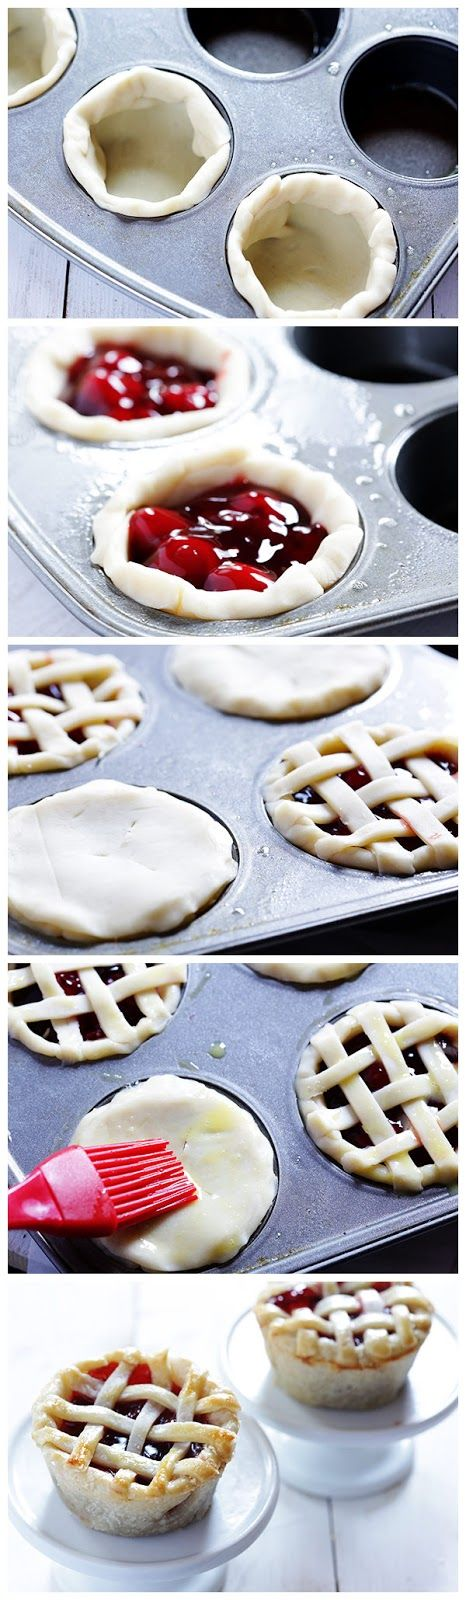 Mini pies from cupcake tins